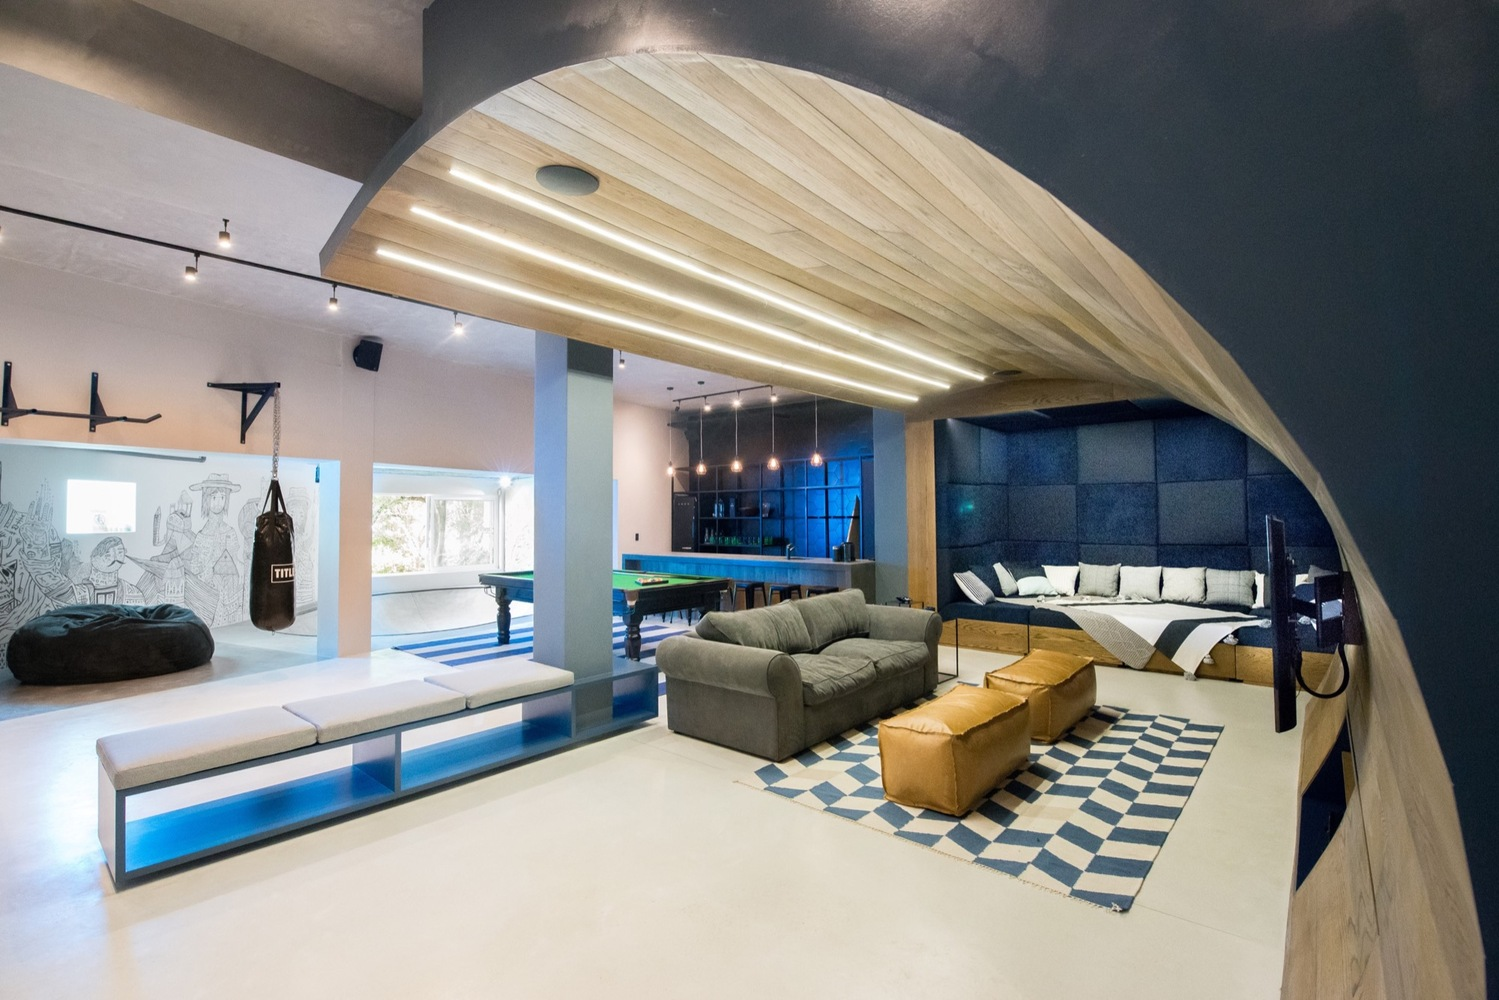 Man Cave Urban Years : Gallery of urban man cave inhouse brand architects